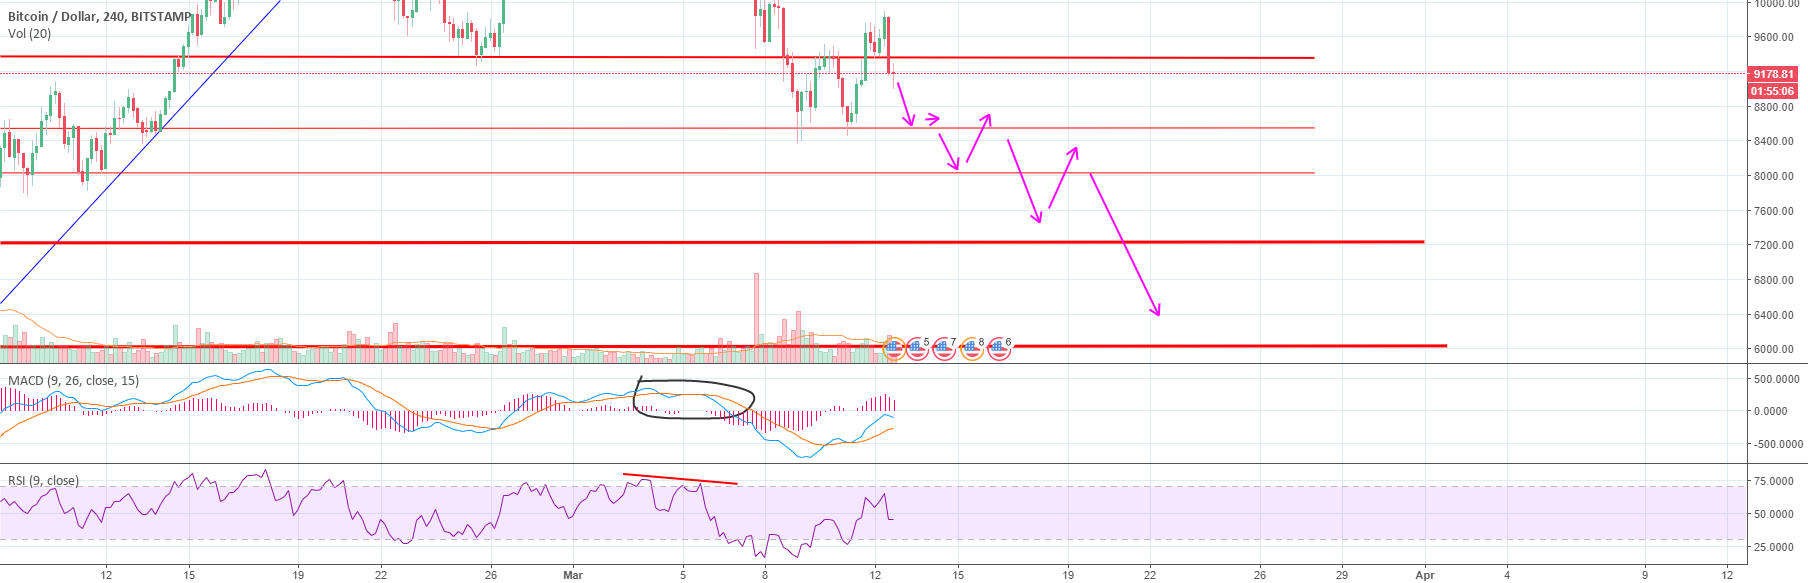 Double top confirmed - A Move down is inevitable - BTC